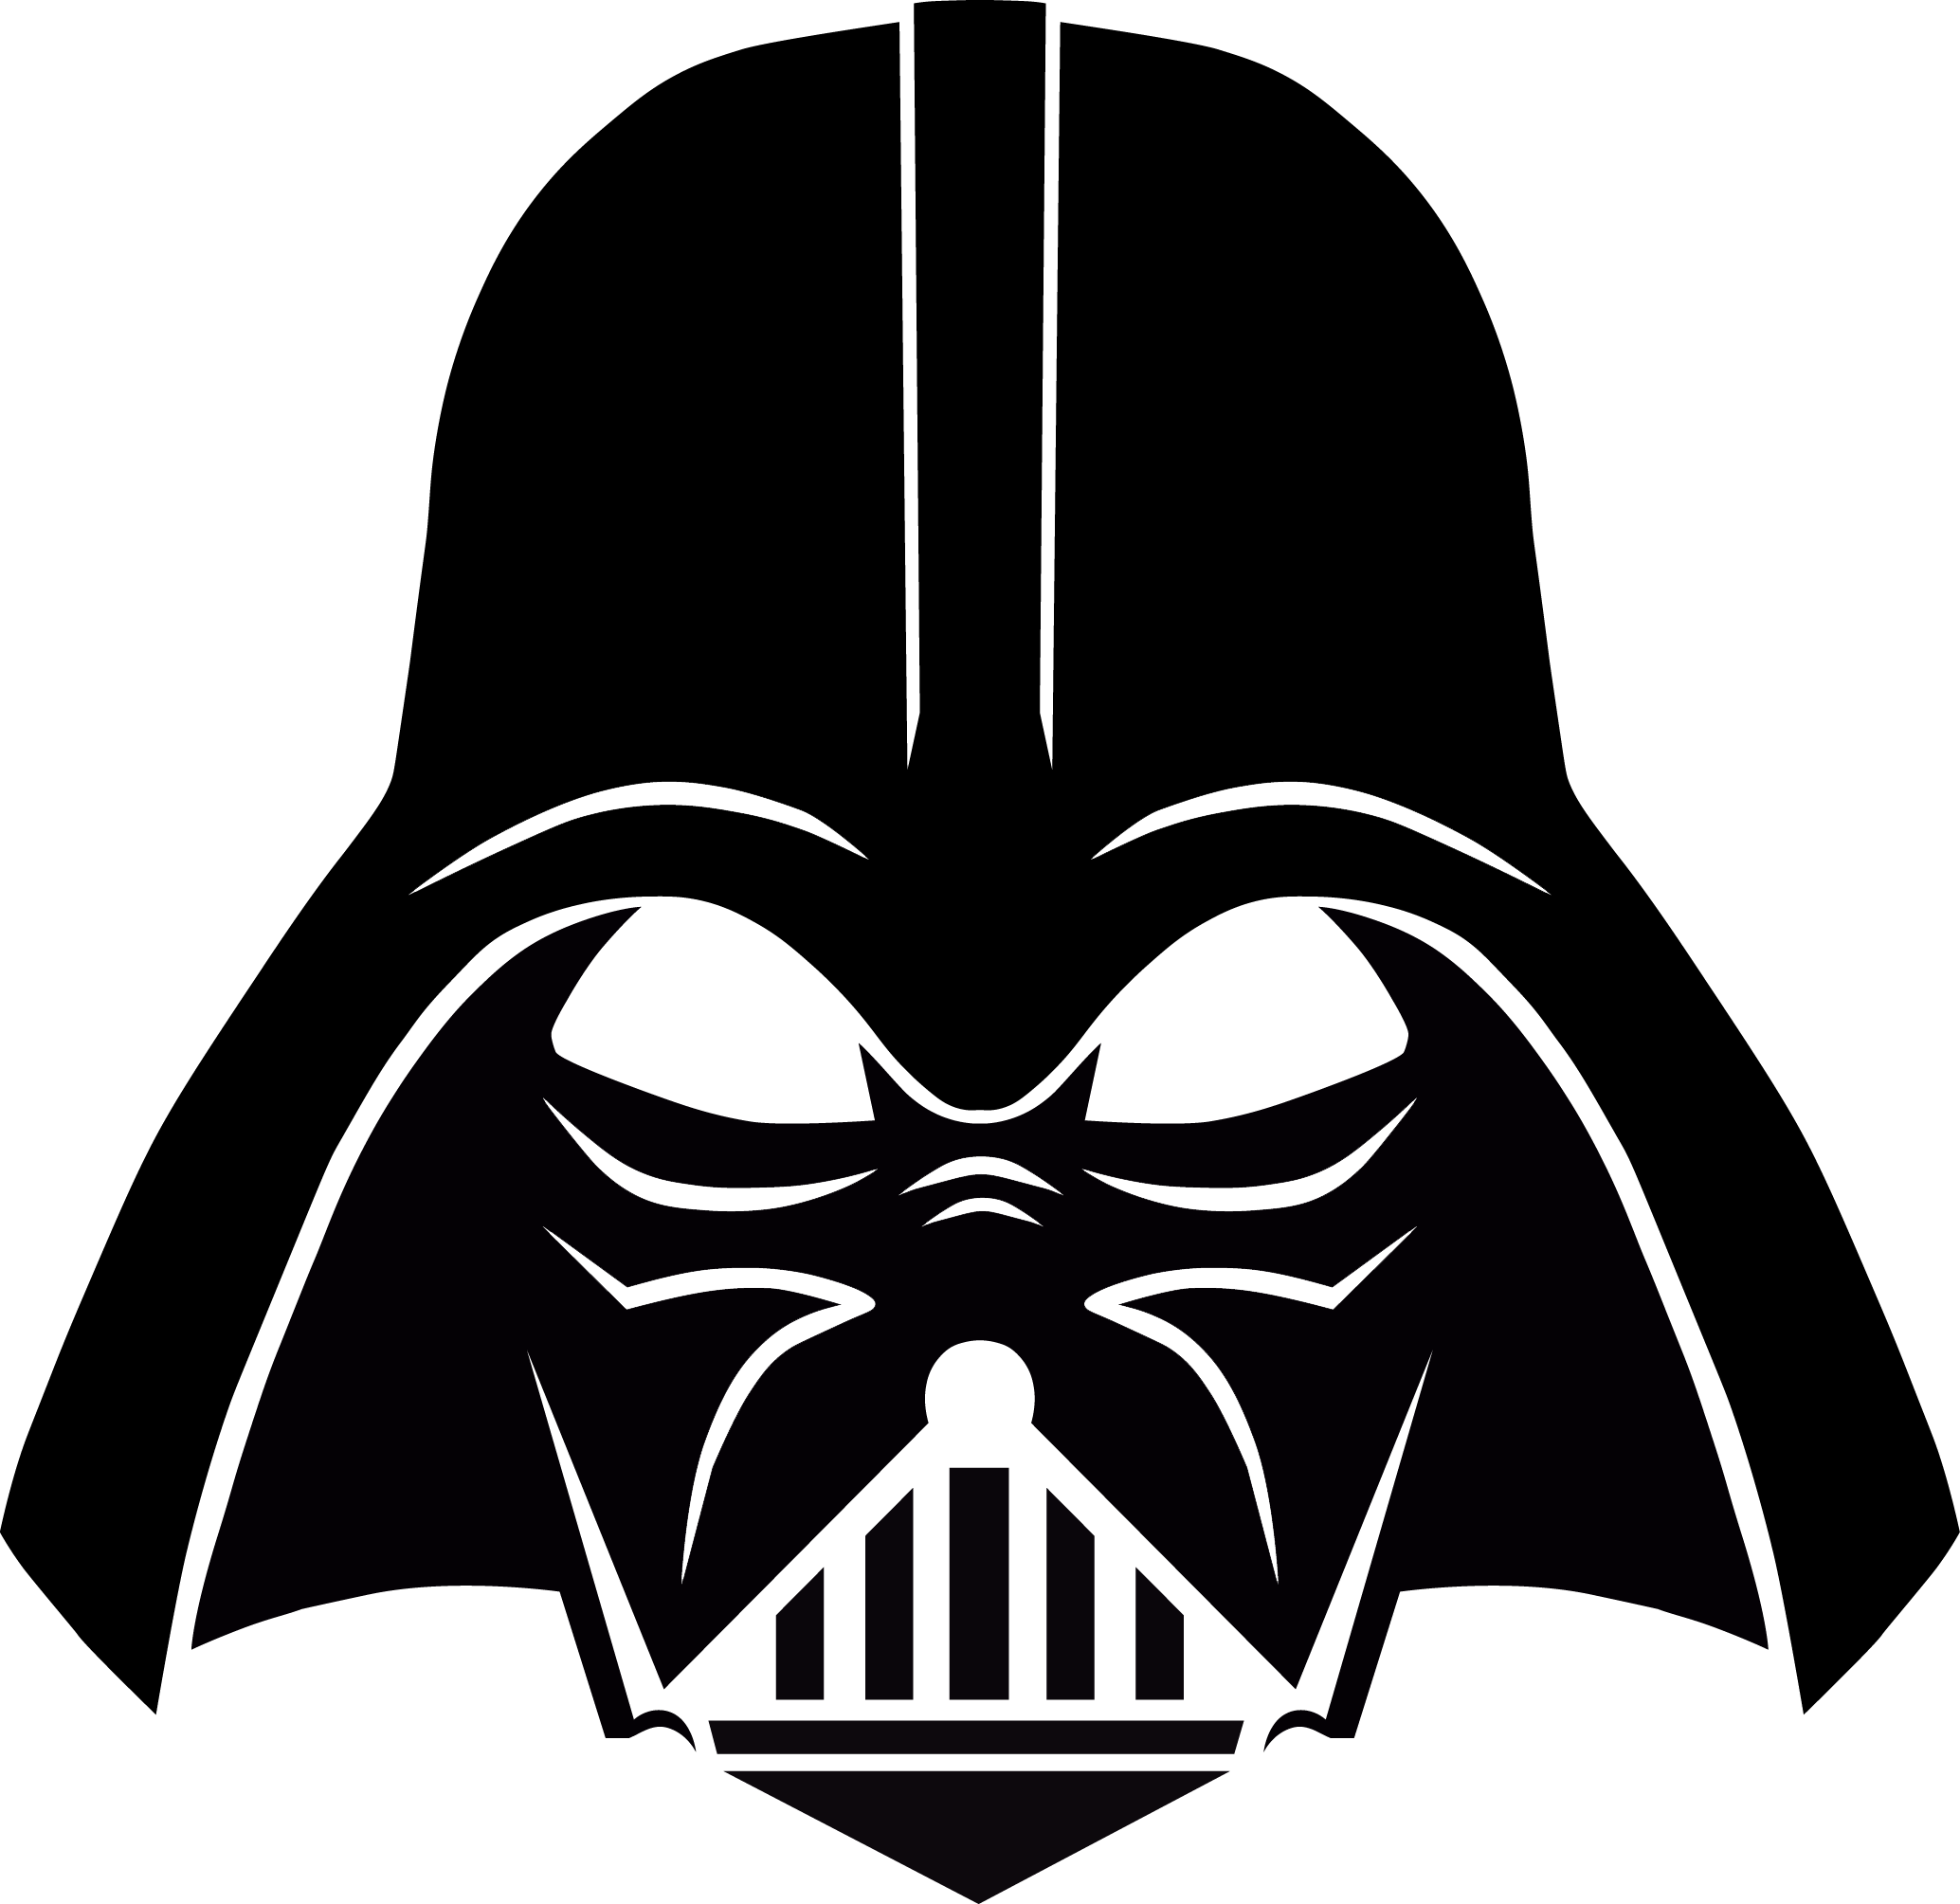 Darth vader clipart mickey ear. Stencil free download the